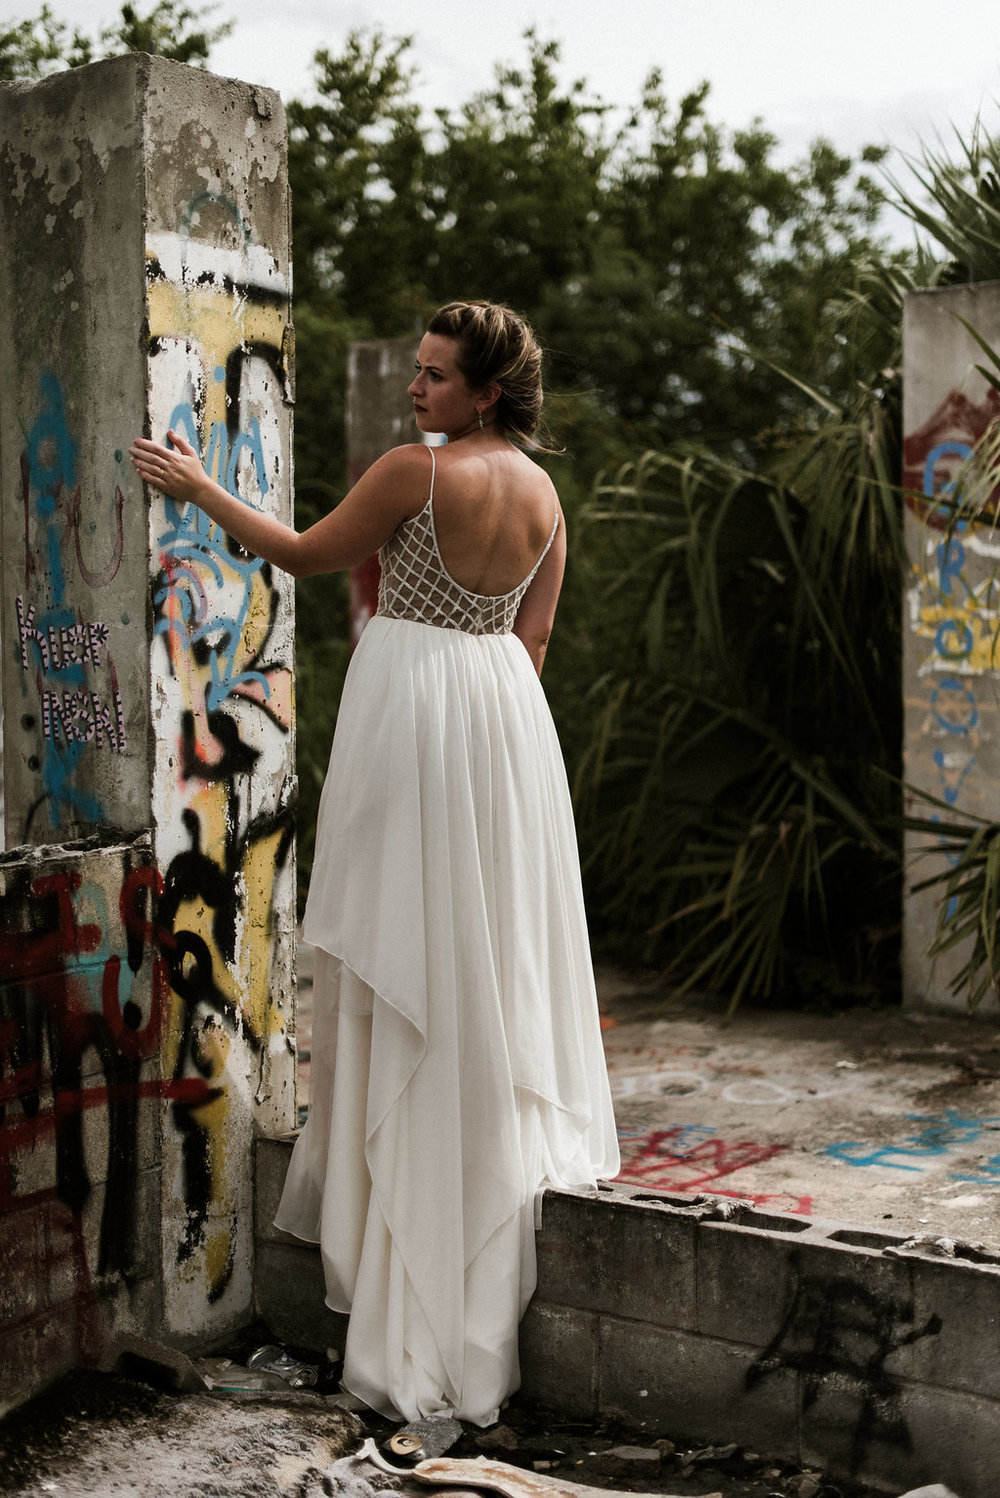 Savannah-Stonehenge-lauren-imus-photography-savannah-wedding-photographer-blush-by-hayley-paige-honeycomb-ivory-and-beau-bridal-boutique-savannah-wedding-dresses-savannah-bridal-boutique-savannah-wedding-planner-savannah-florist-graffiti-wedding-26.jpg